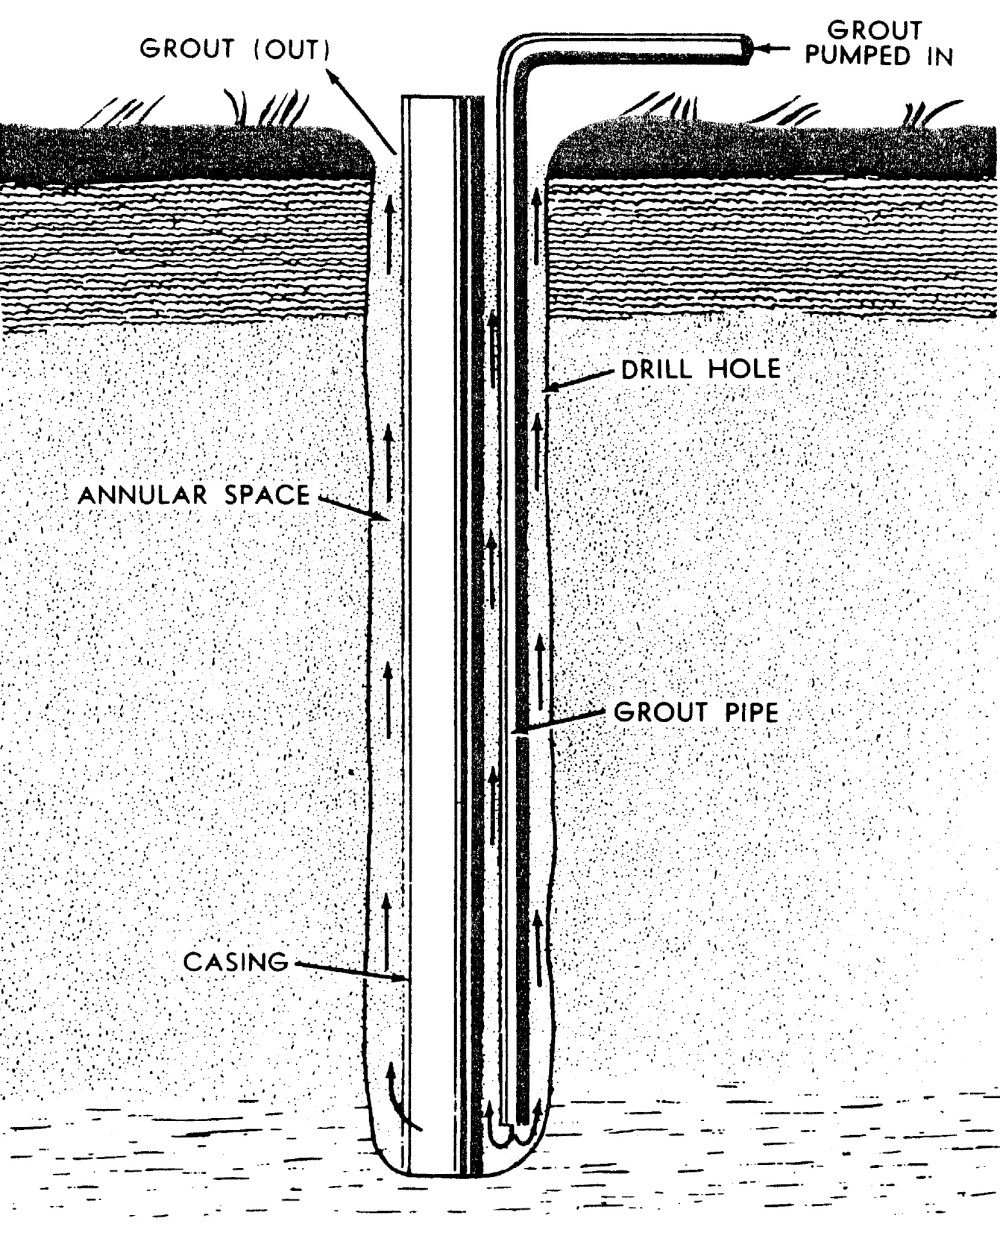 medium resolution of  of the casing until it reaches ground surface please note that not every county in pennsylvania requires pressure grouting view well grouting diagram